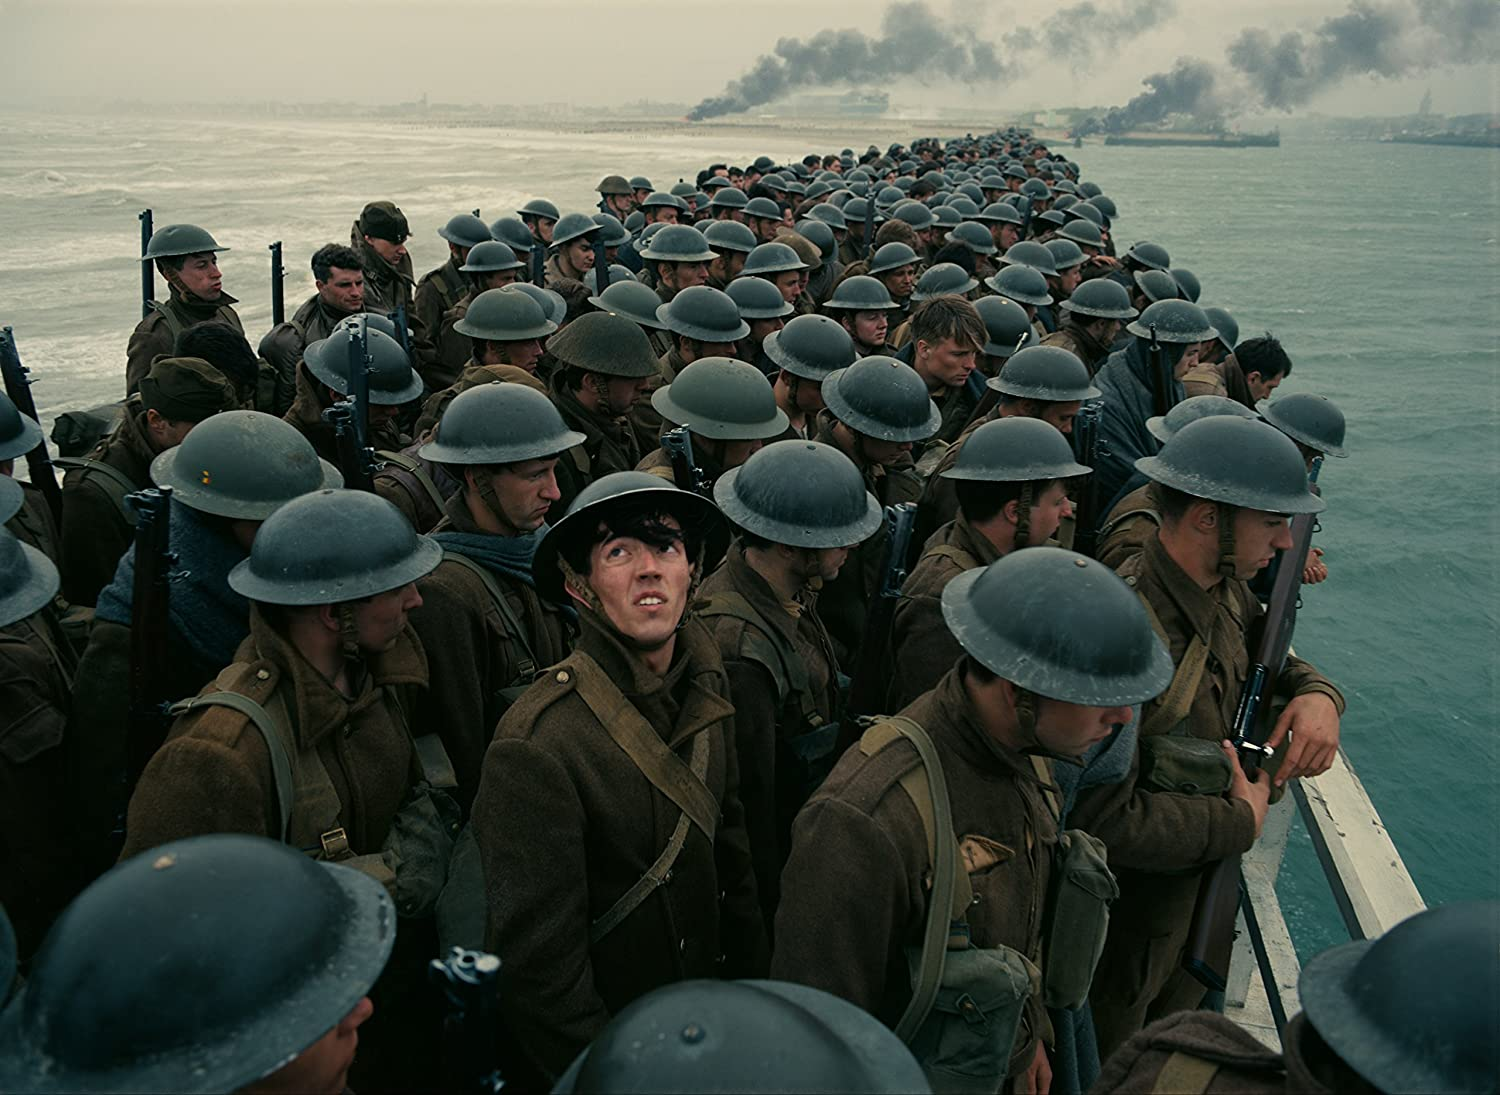 Dunkirk Soldiers Movie Poster Max 40% OFF Cheap Sale 76% OFF Print Movi Wall Art